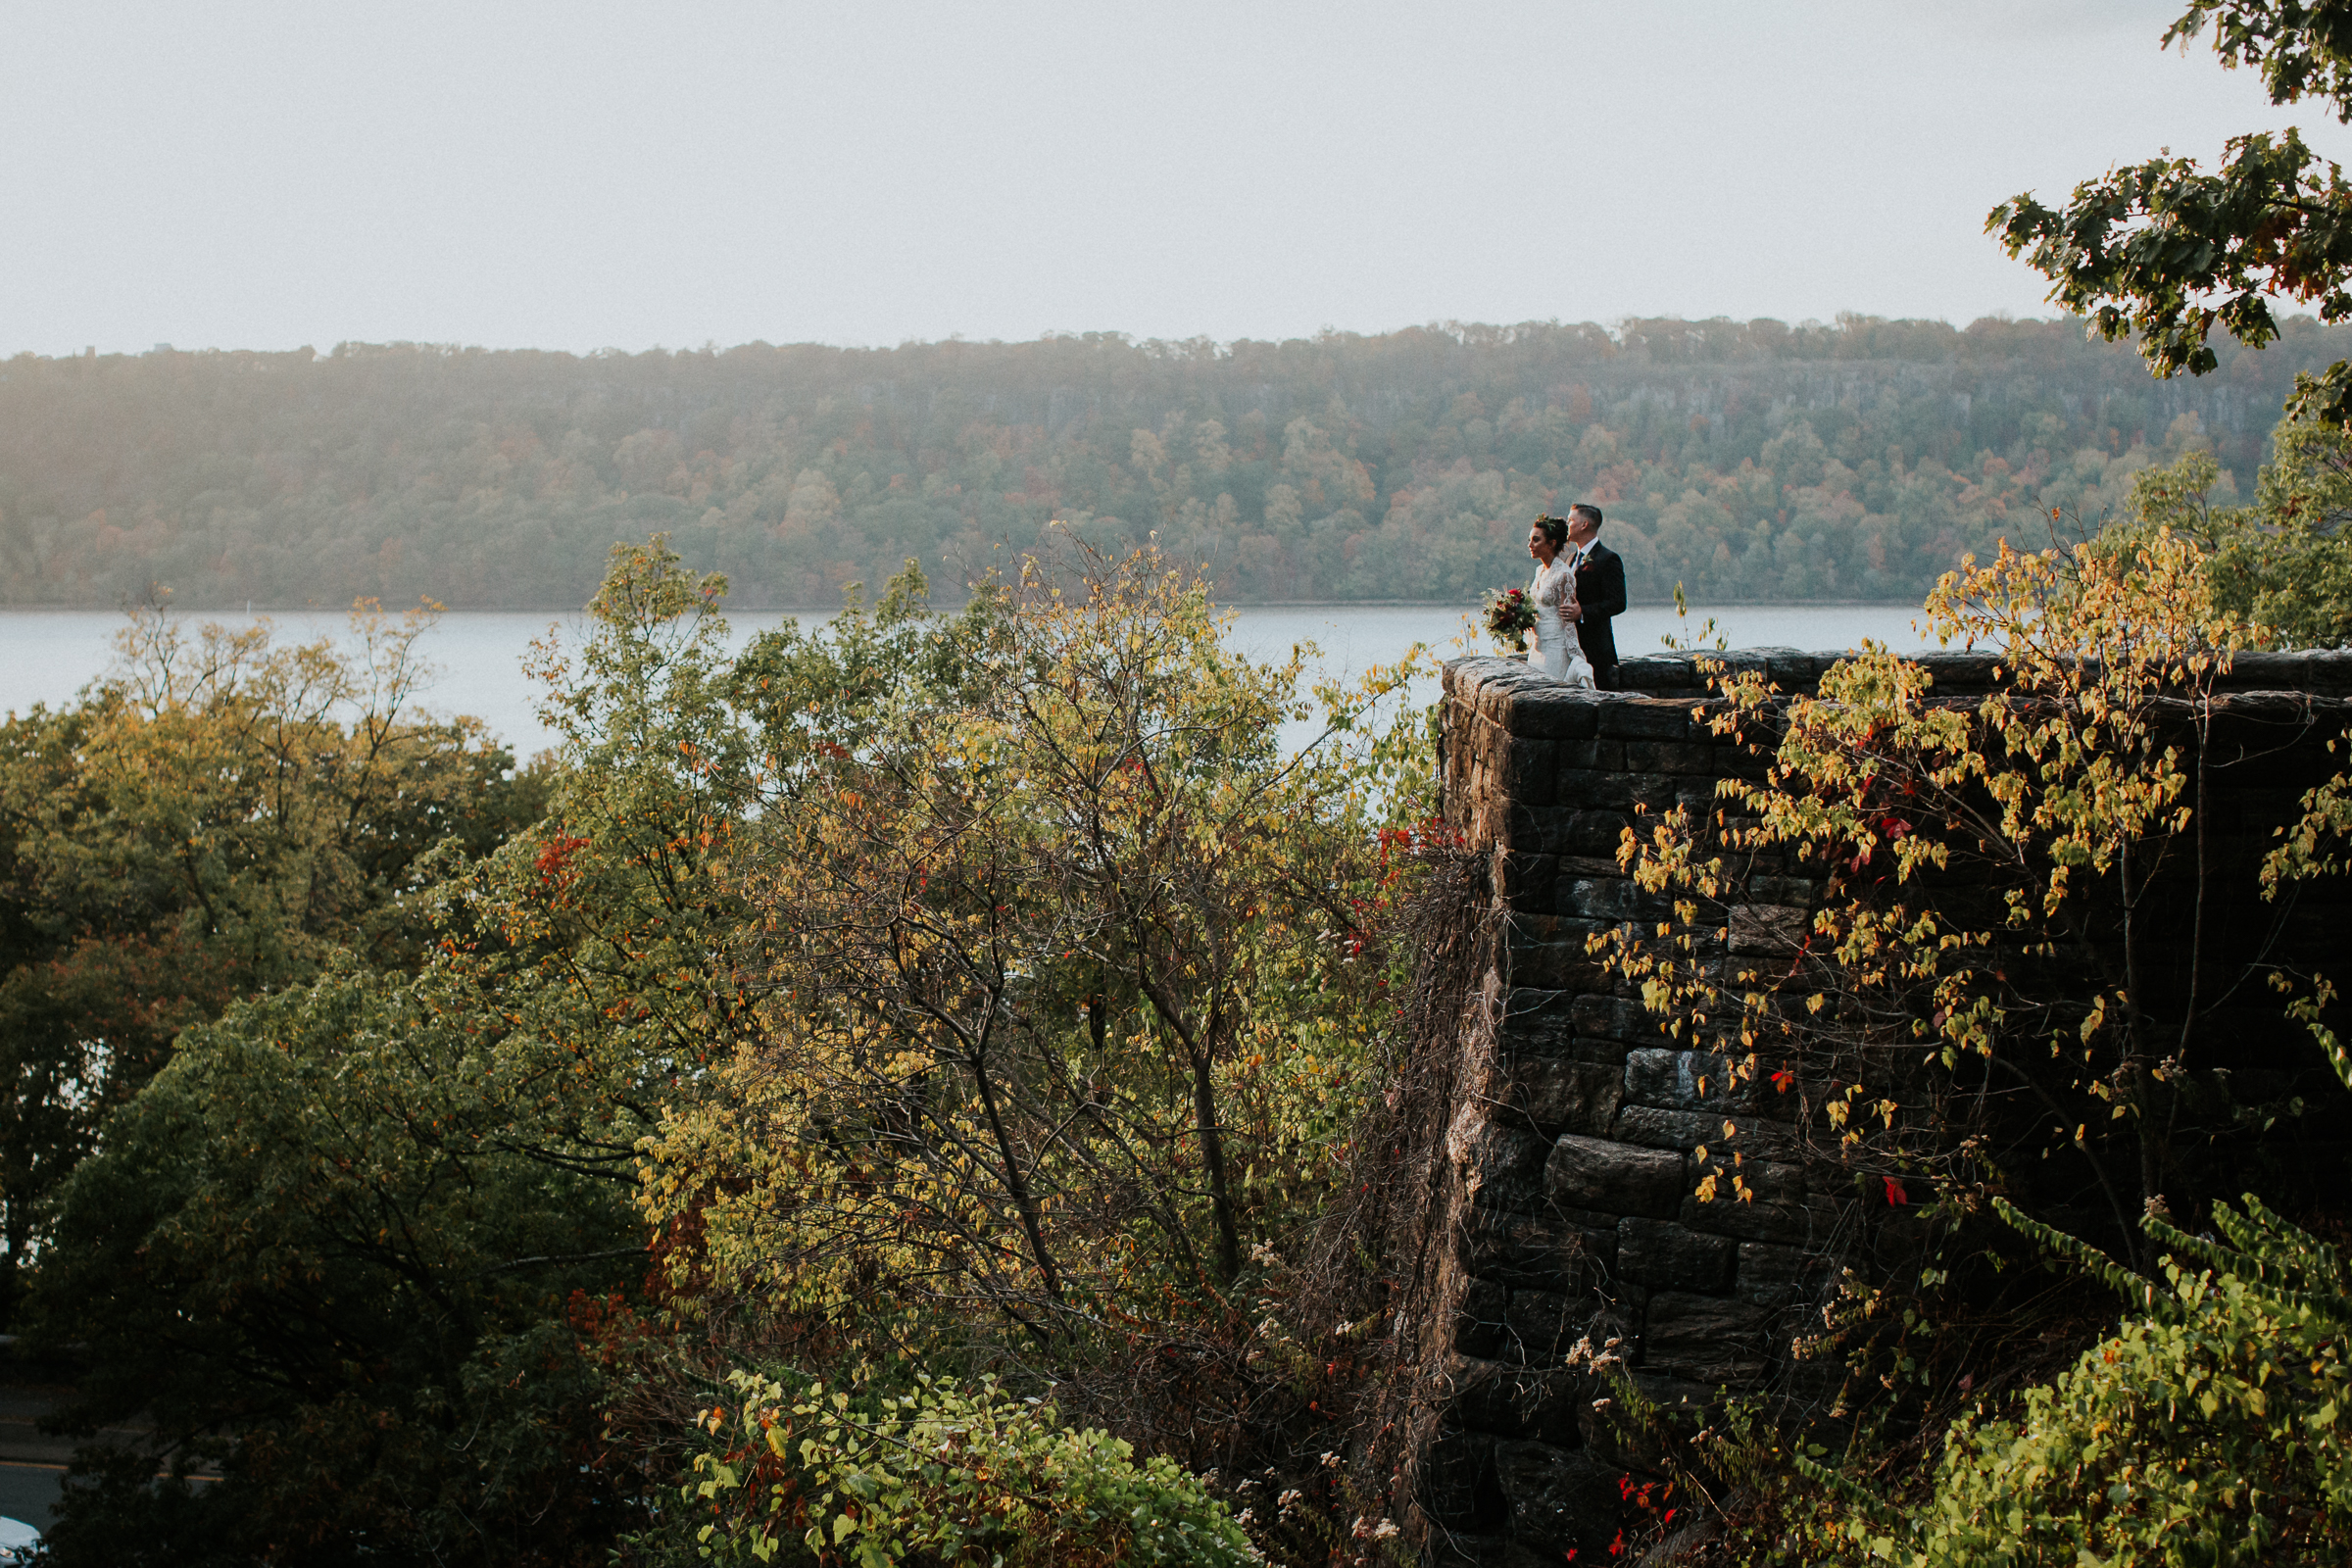 New-Leaf-Cafe-Fort-Tryon-Park-New-York-Documentary-Wedding-Photographer-69.jpg